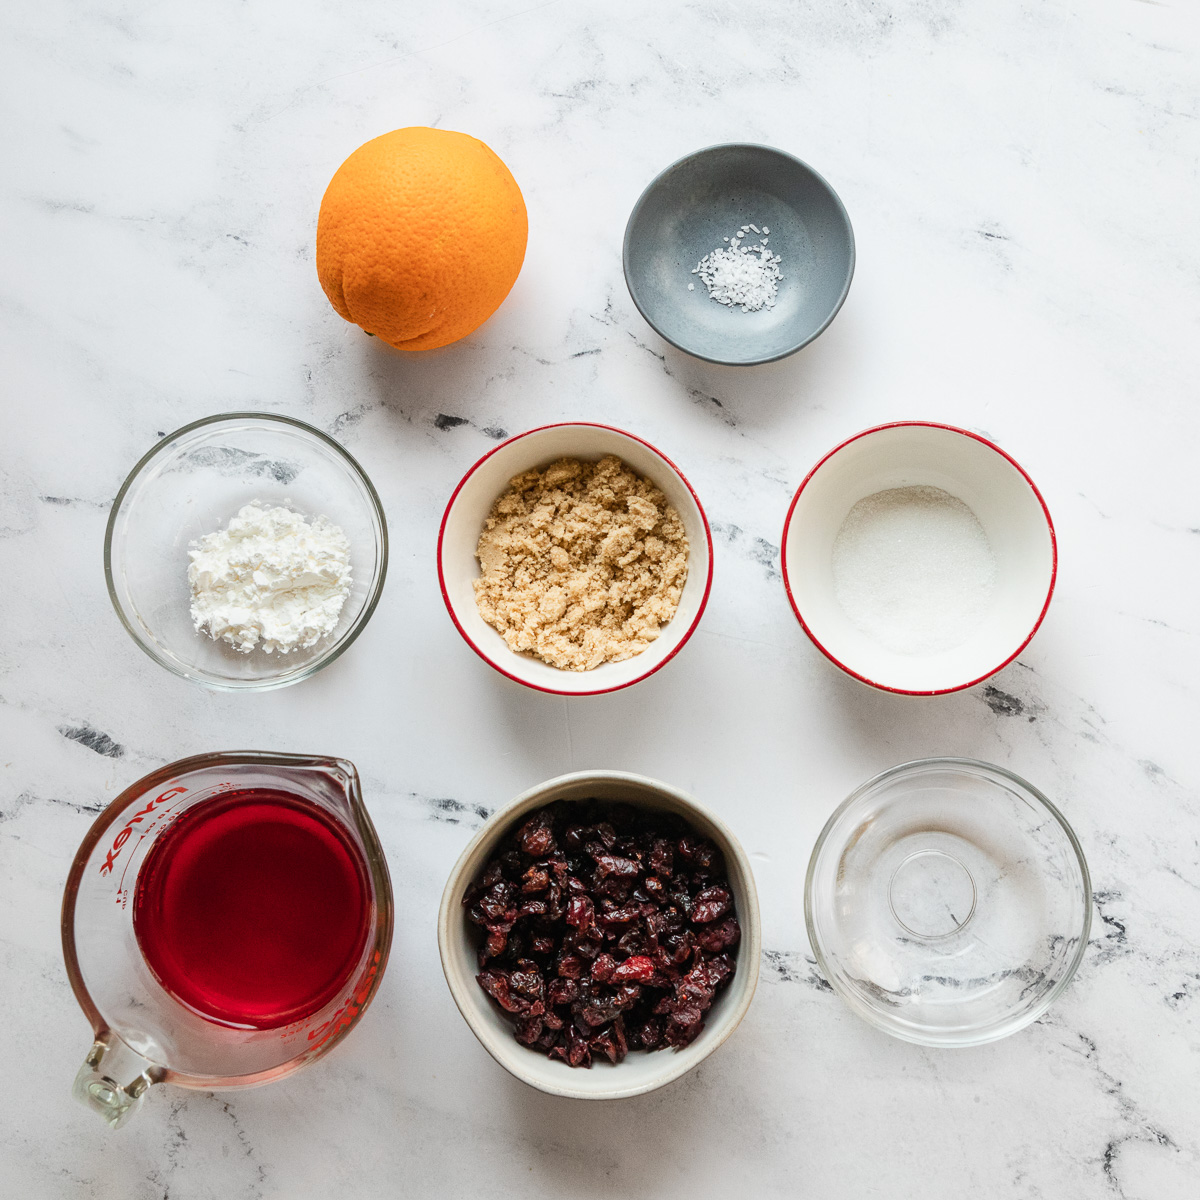 an overhead shot of all the ingredients needed to make cranberry sauce with dried cranberries